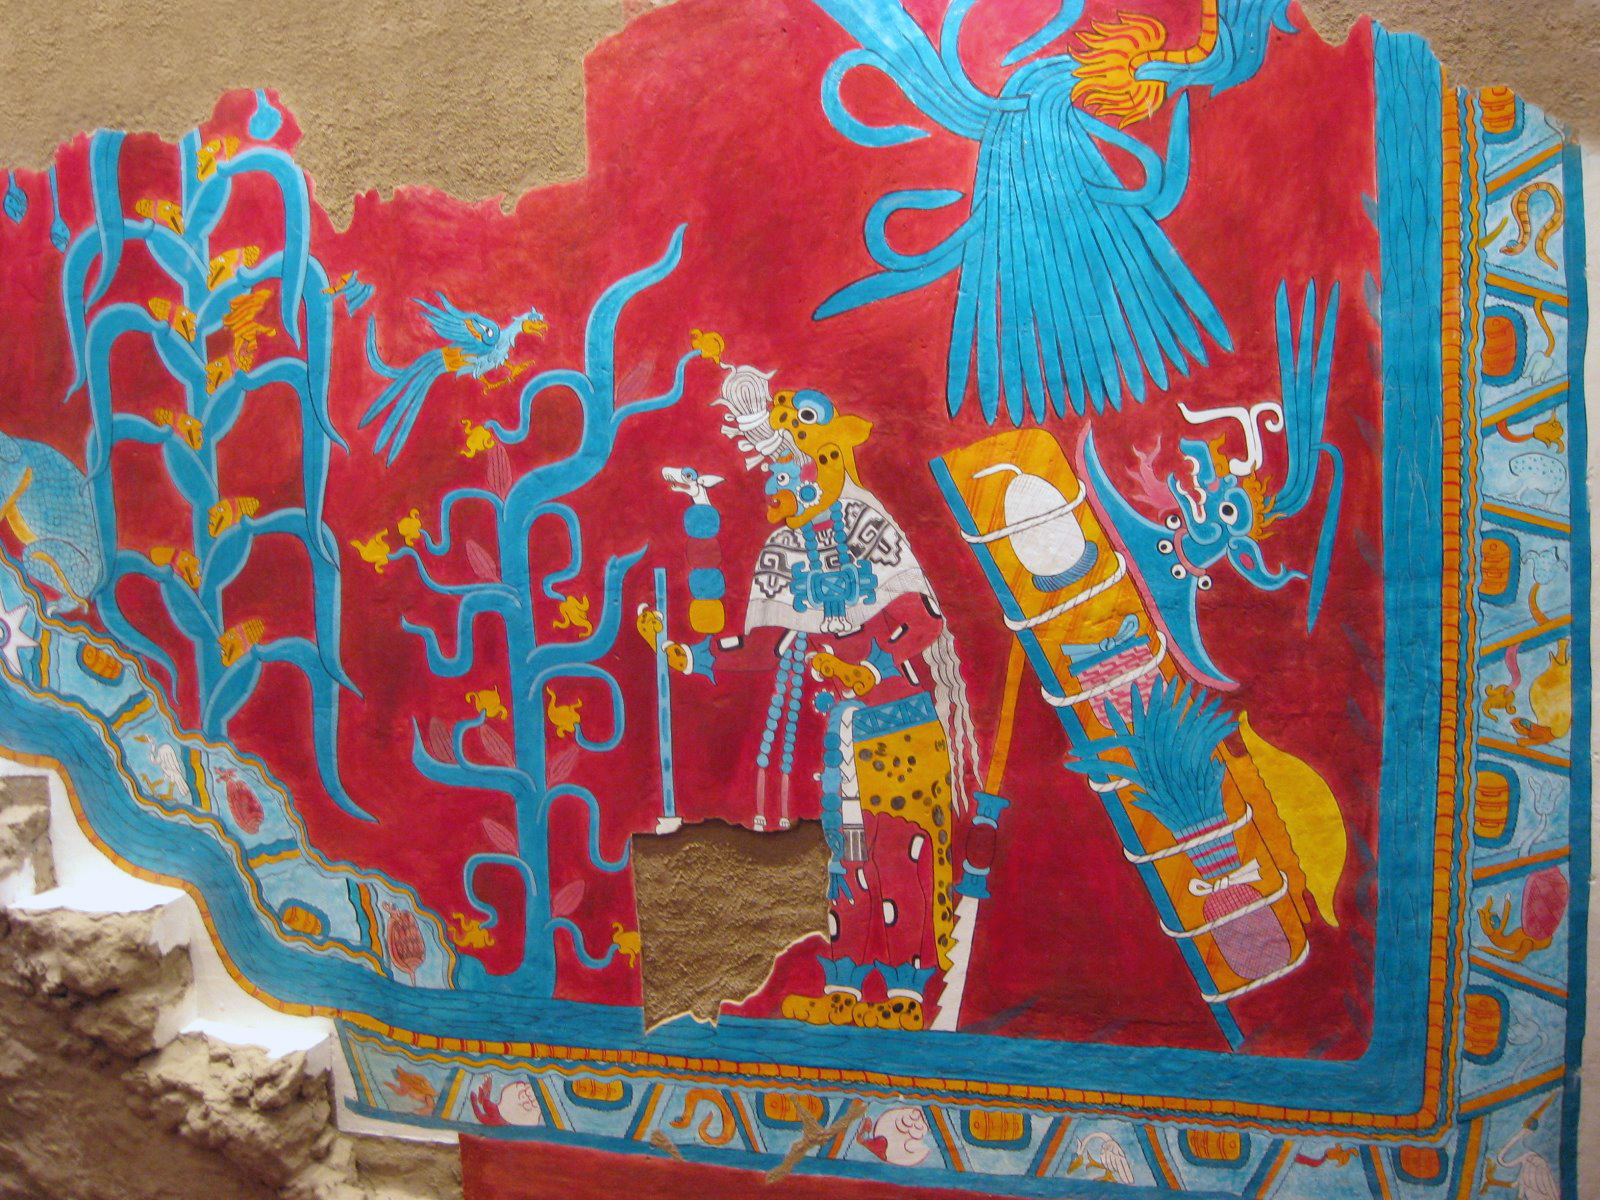 Mural Wall Art Cacaxtla Mexico